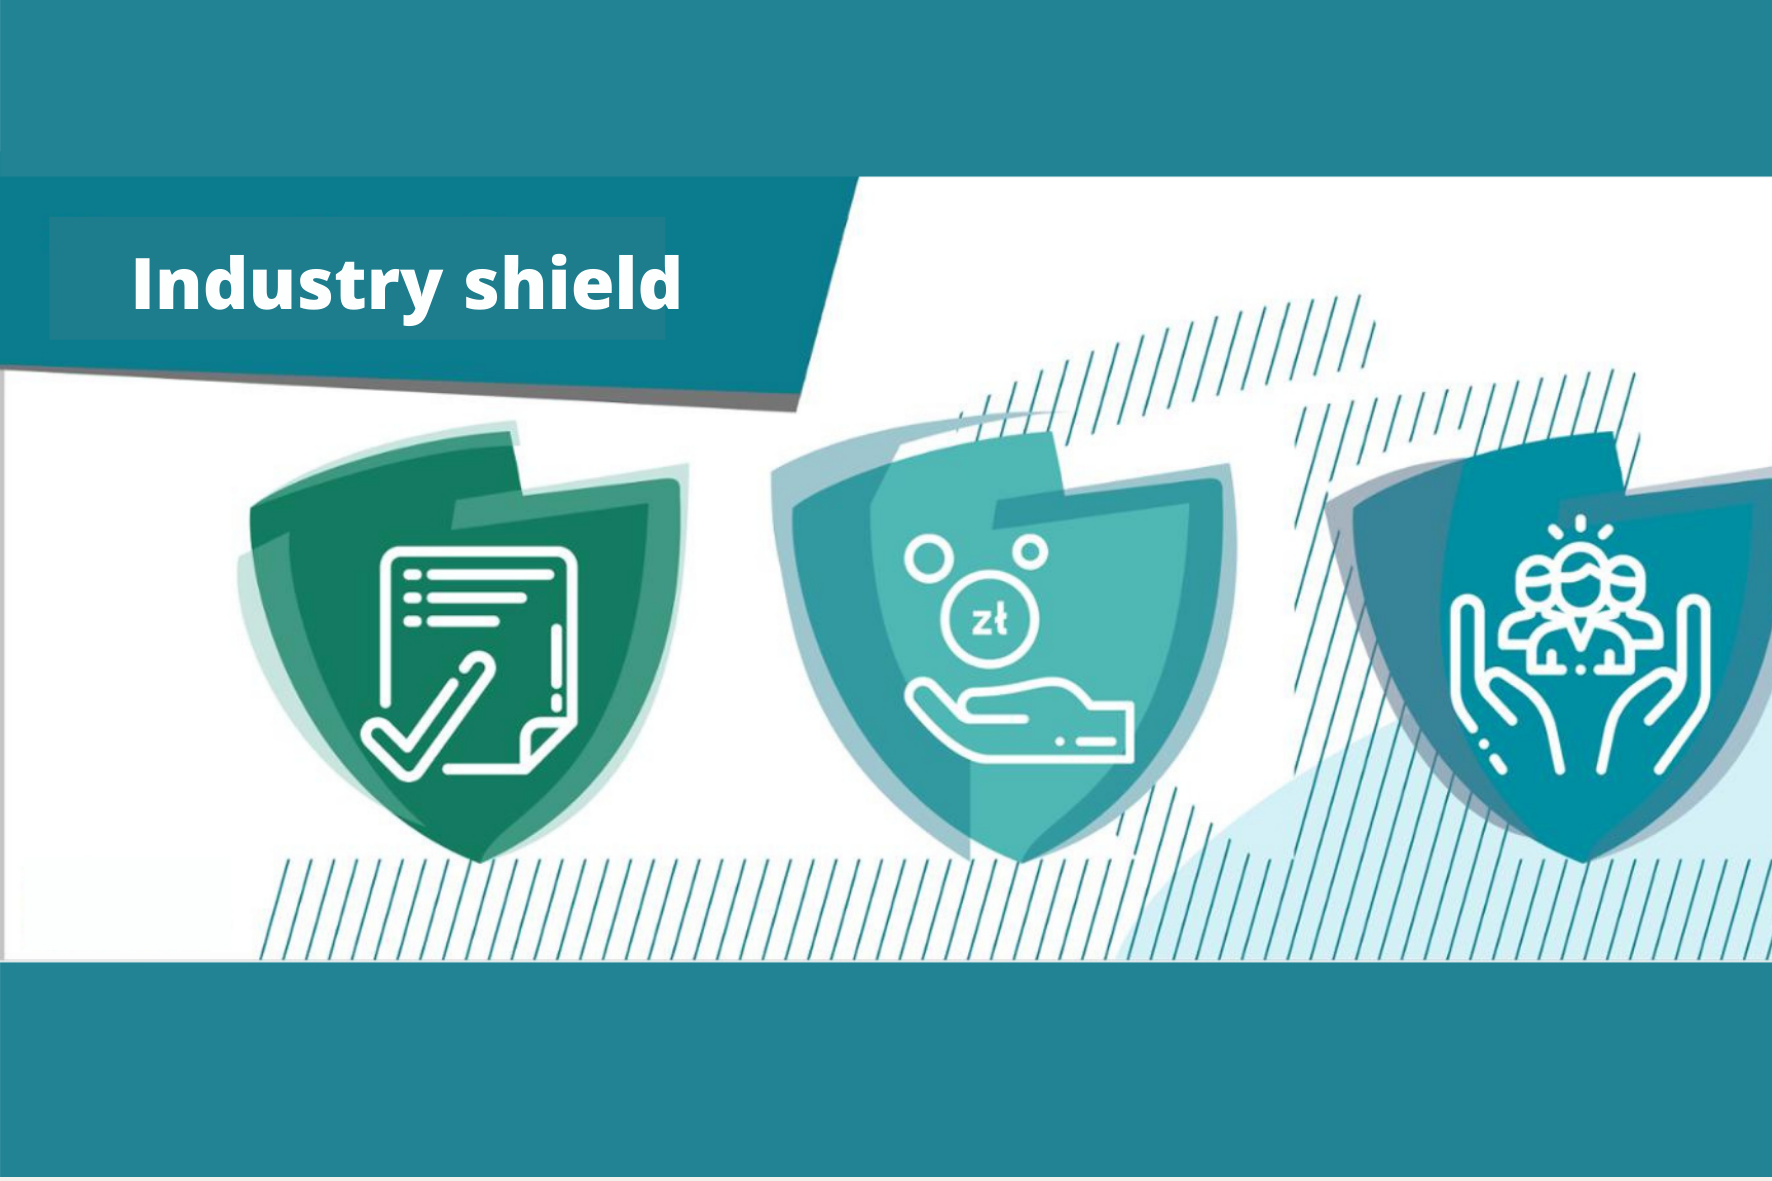 Industry shield. Three shields in shades of green on a white background